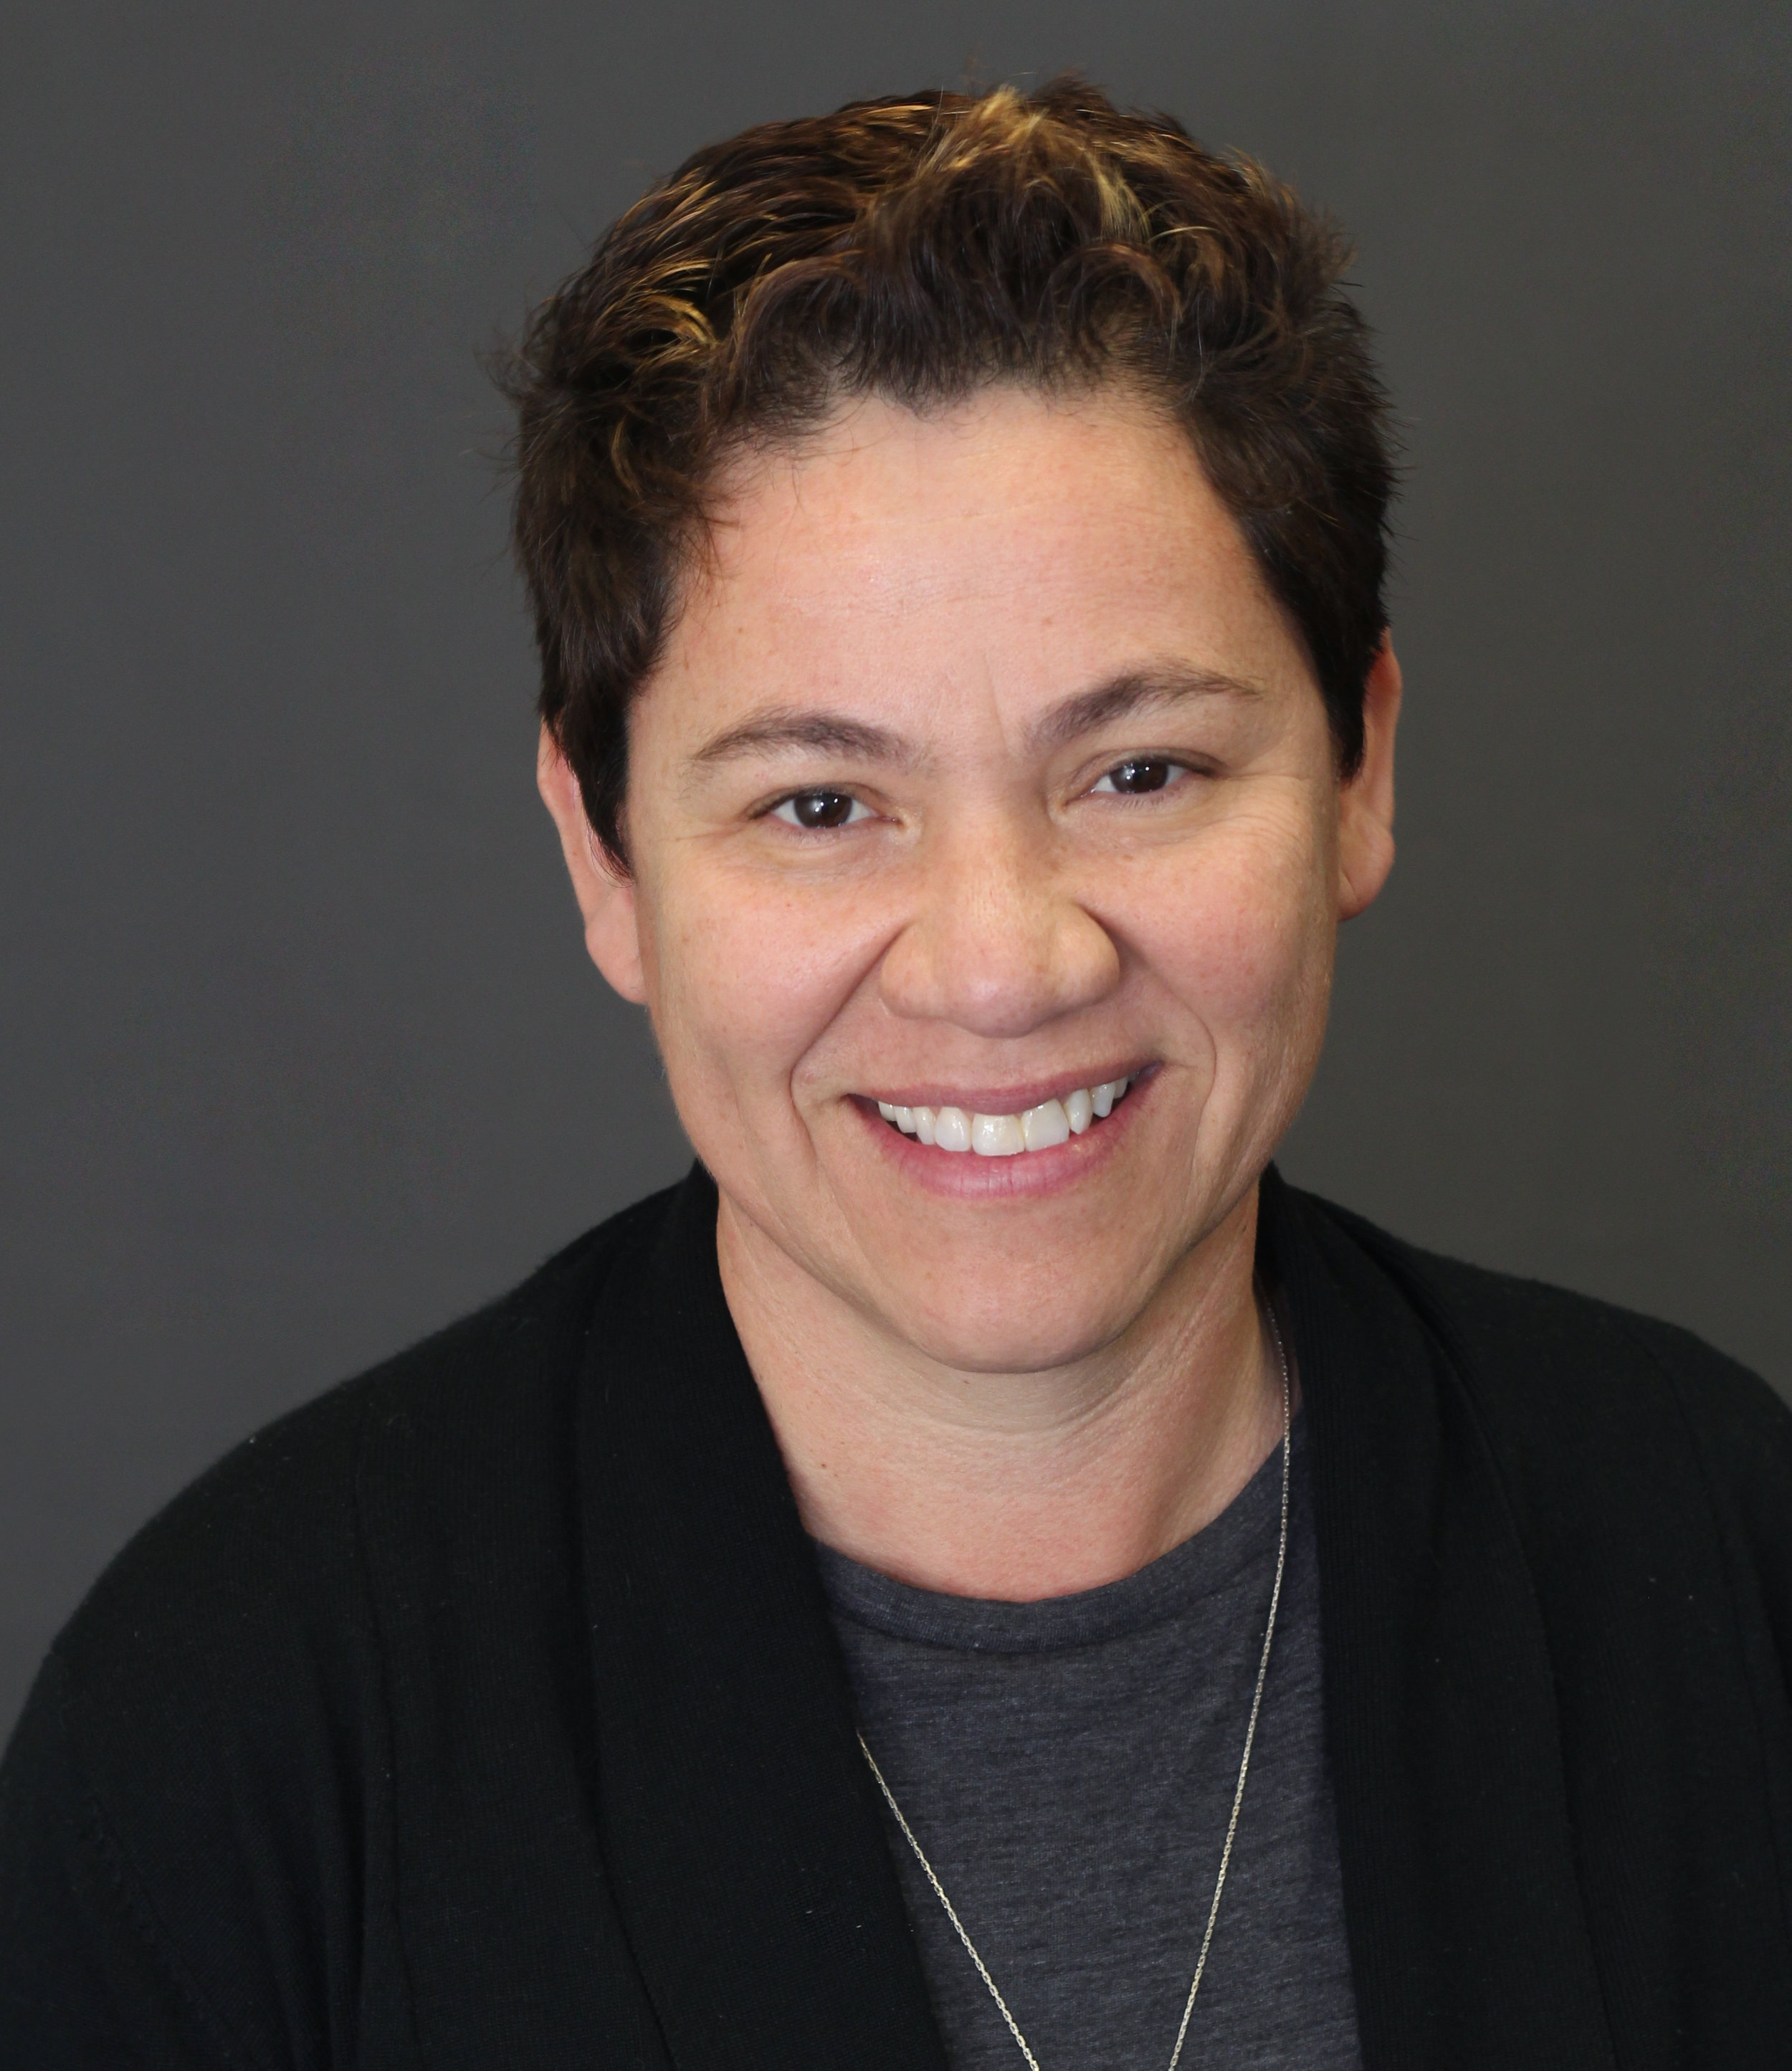 MAYTE REDCAY, LCSW, LCADC, SAP, CEAP - Primary Areas of Expertise Mental Health, Substance Abuse, and Employee Assistance Programs (EAPs)Education Masters of Social Work (MSW), Rutgers University Masters in Education (M.Ed) and Administration, University of San Carlos of Guatemala